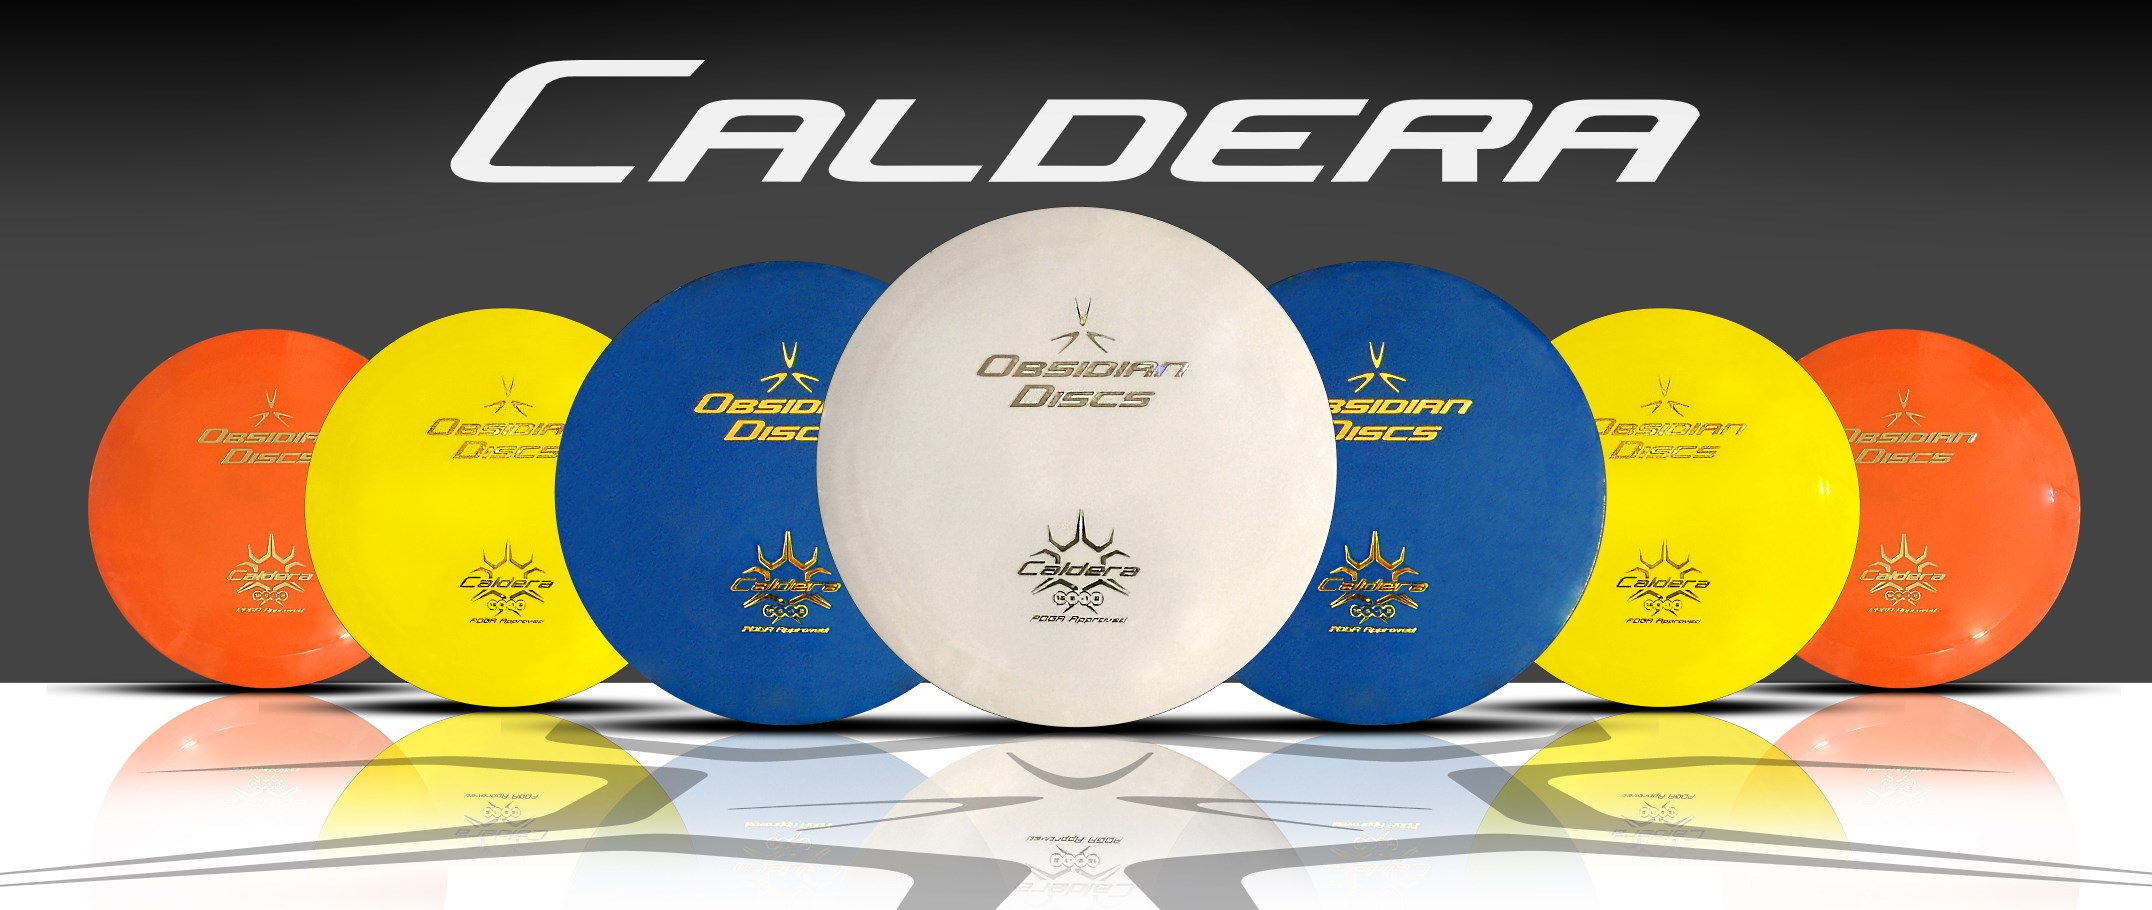 Obsidian Discs - Caldera Distance Driver